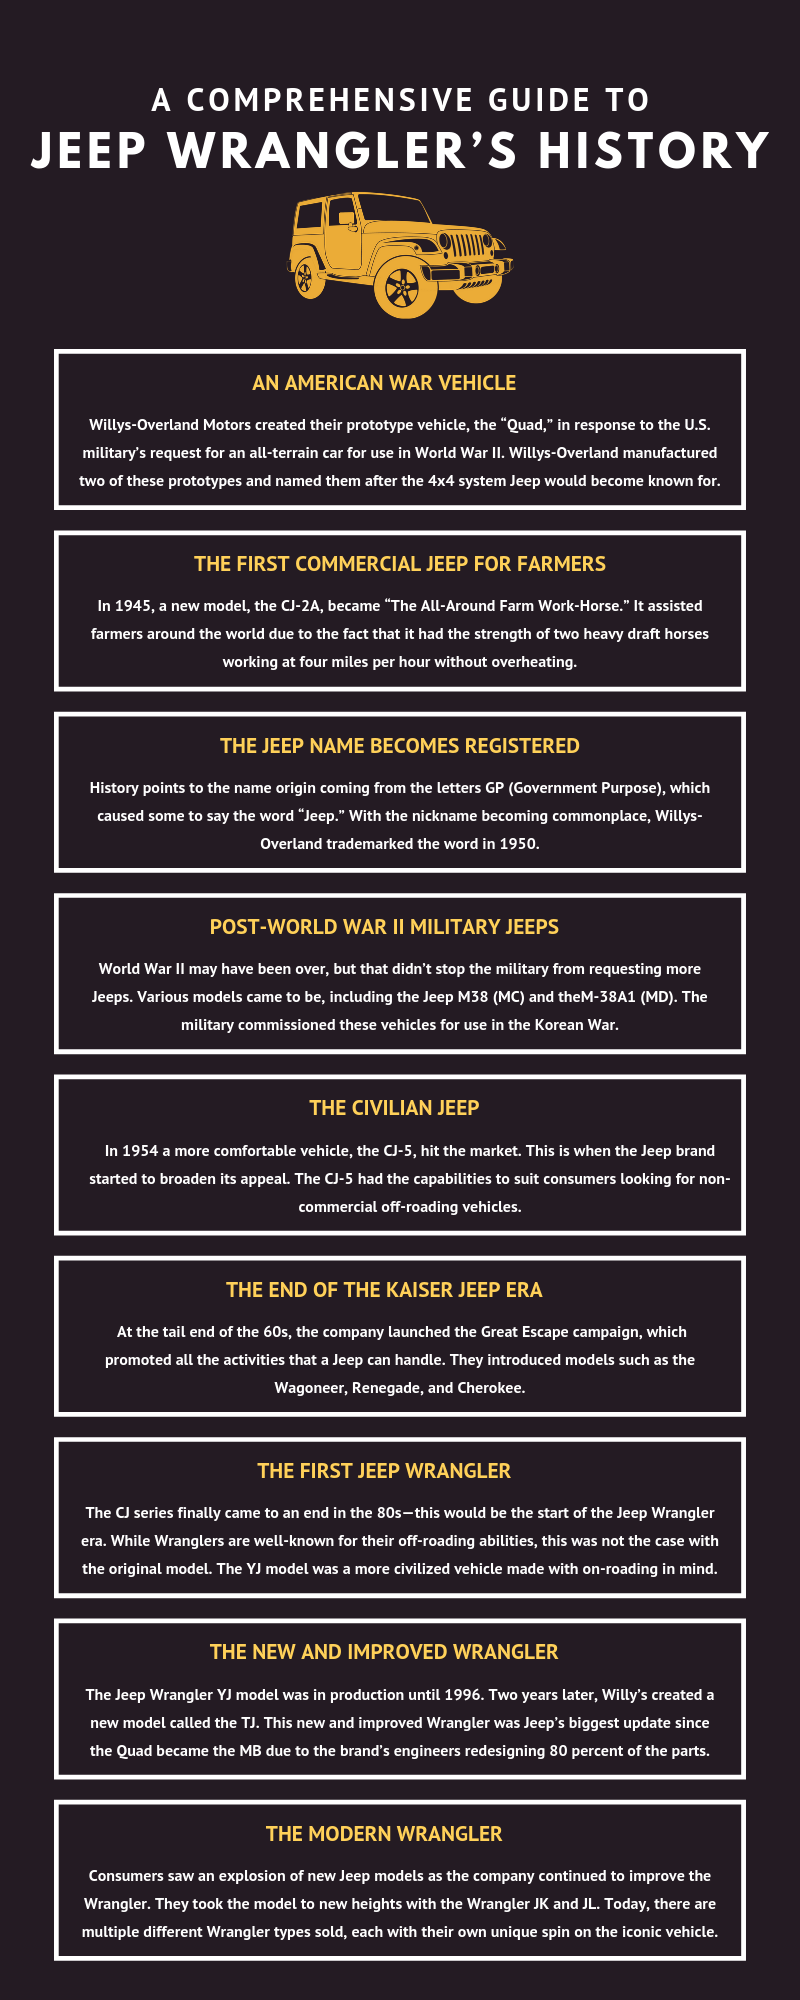 A Comprehensive Guide to Jeep Wrangler's History infographic